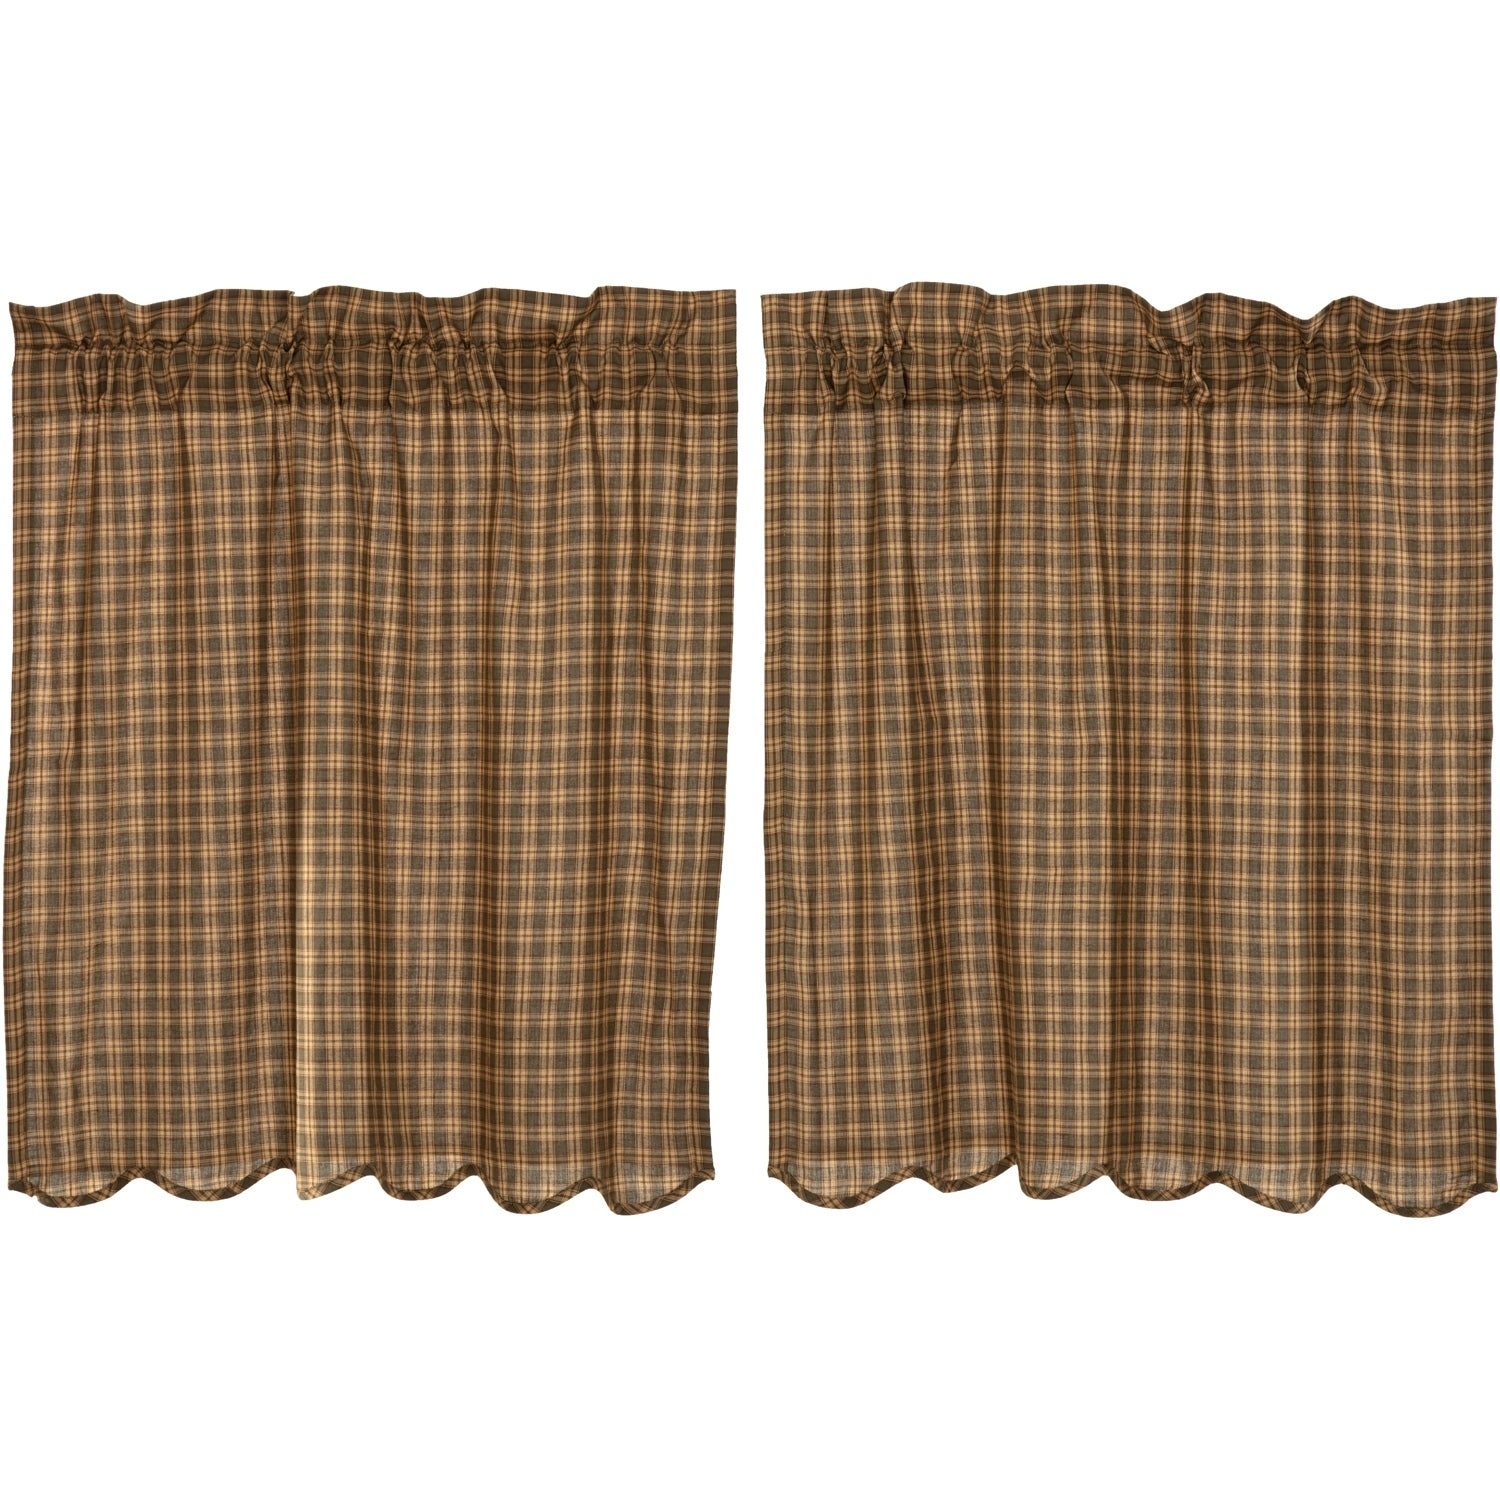 Green Rustic Kitchen Curtains Vhc Cedar Ridge Tier Pair Rod Pocket Cotton  Plaid inside Dexter 24 Inch Tier Pairs in Green (Image 9 of 20)